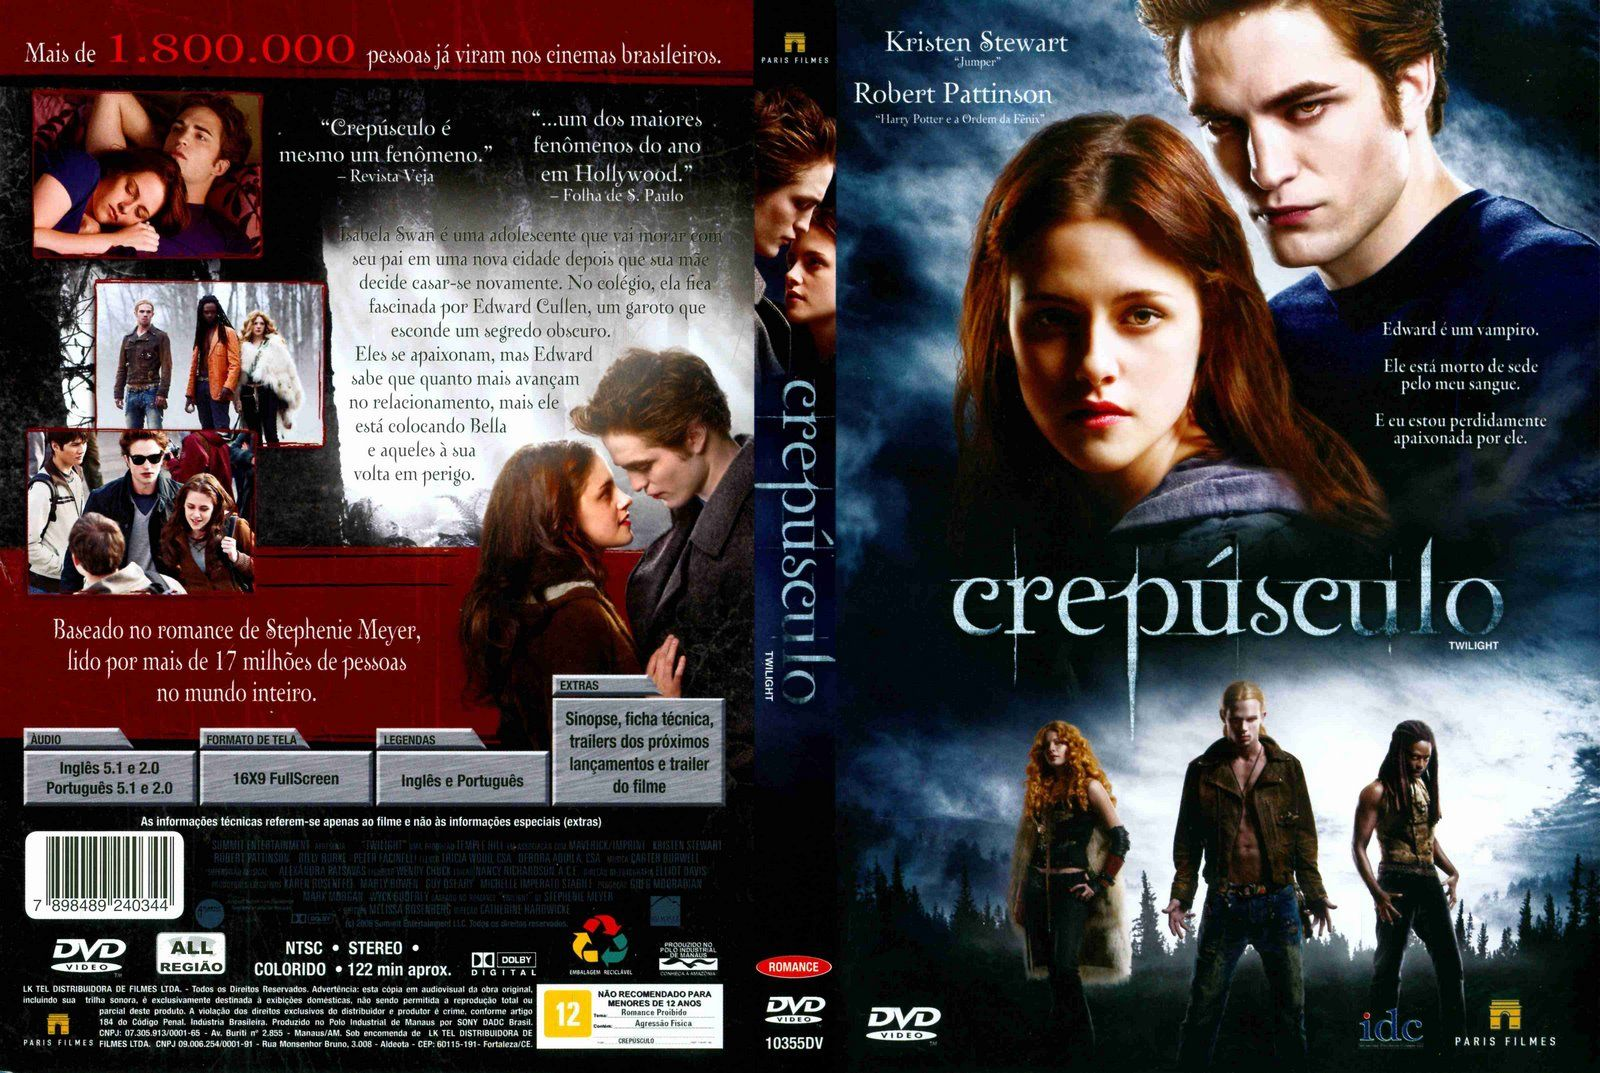 A Saga Crepusculo 03 Amanhecer Robert Pattinson Cinema